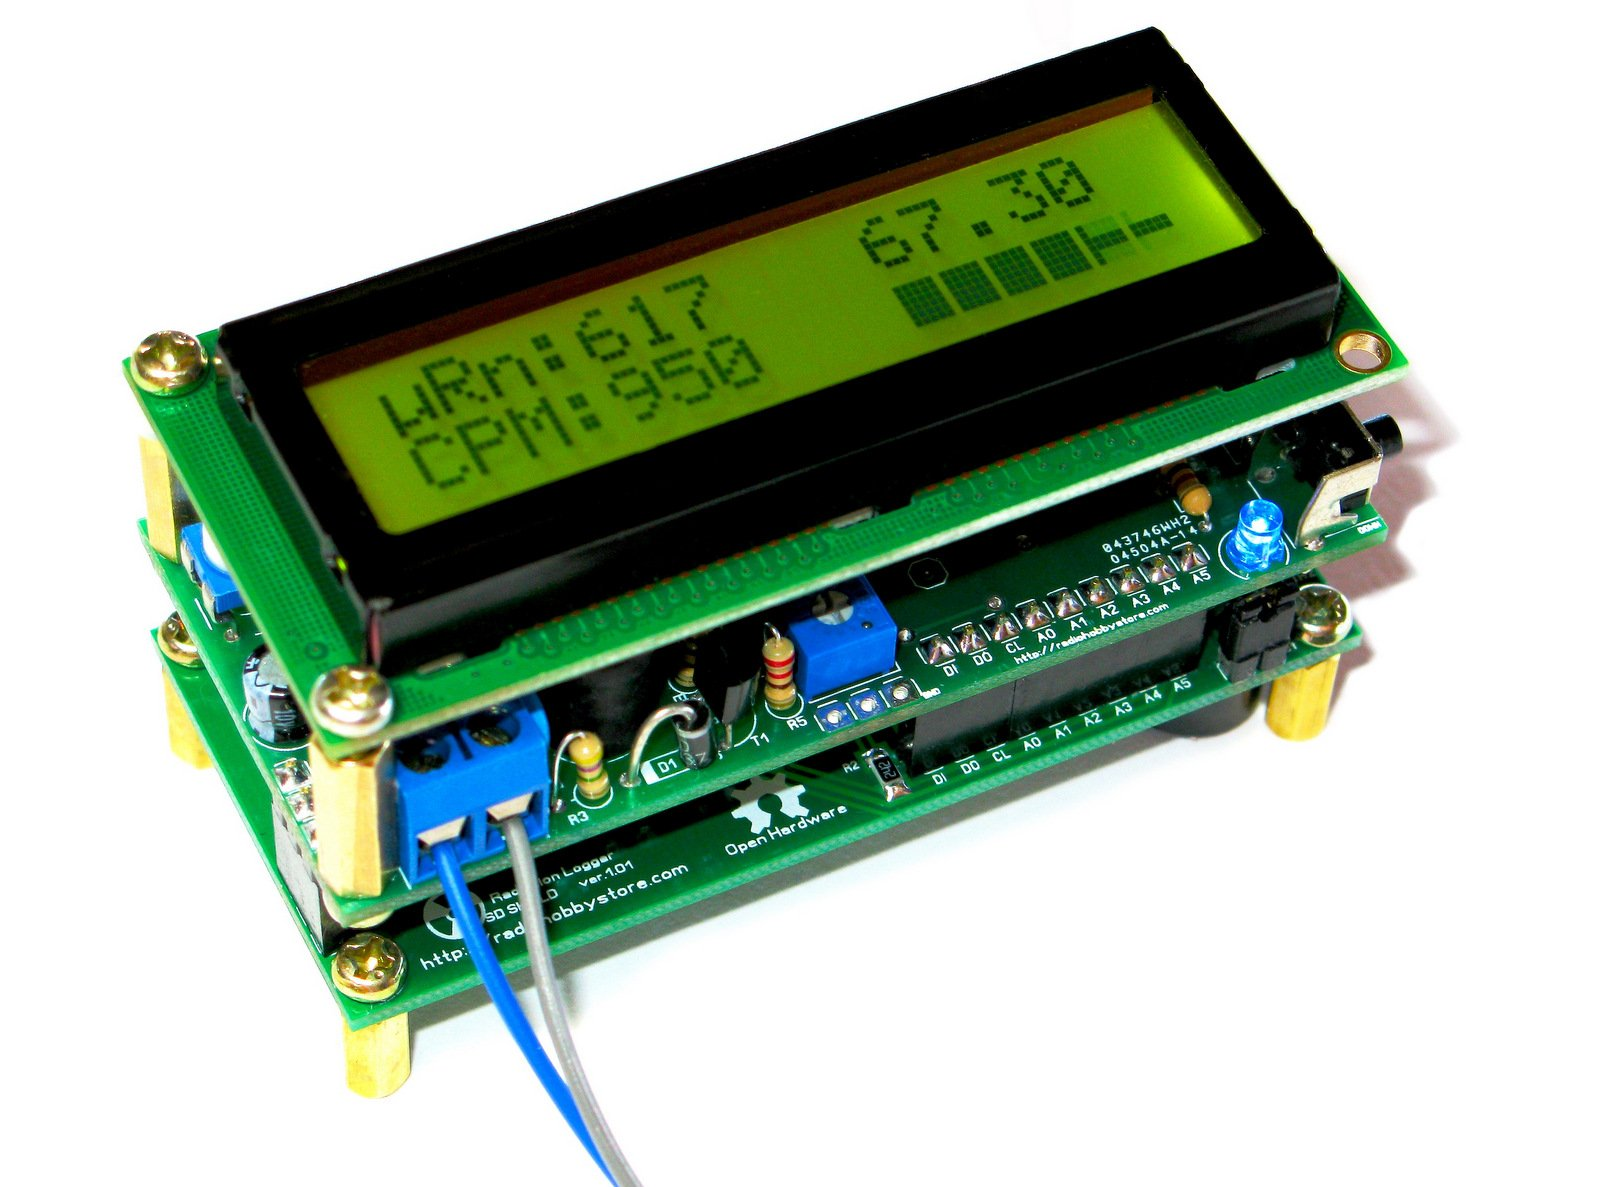 Diy arduino ide geiger counter with sd logger from